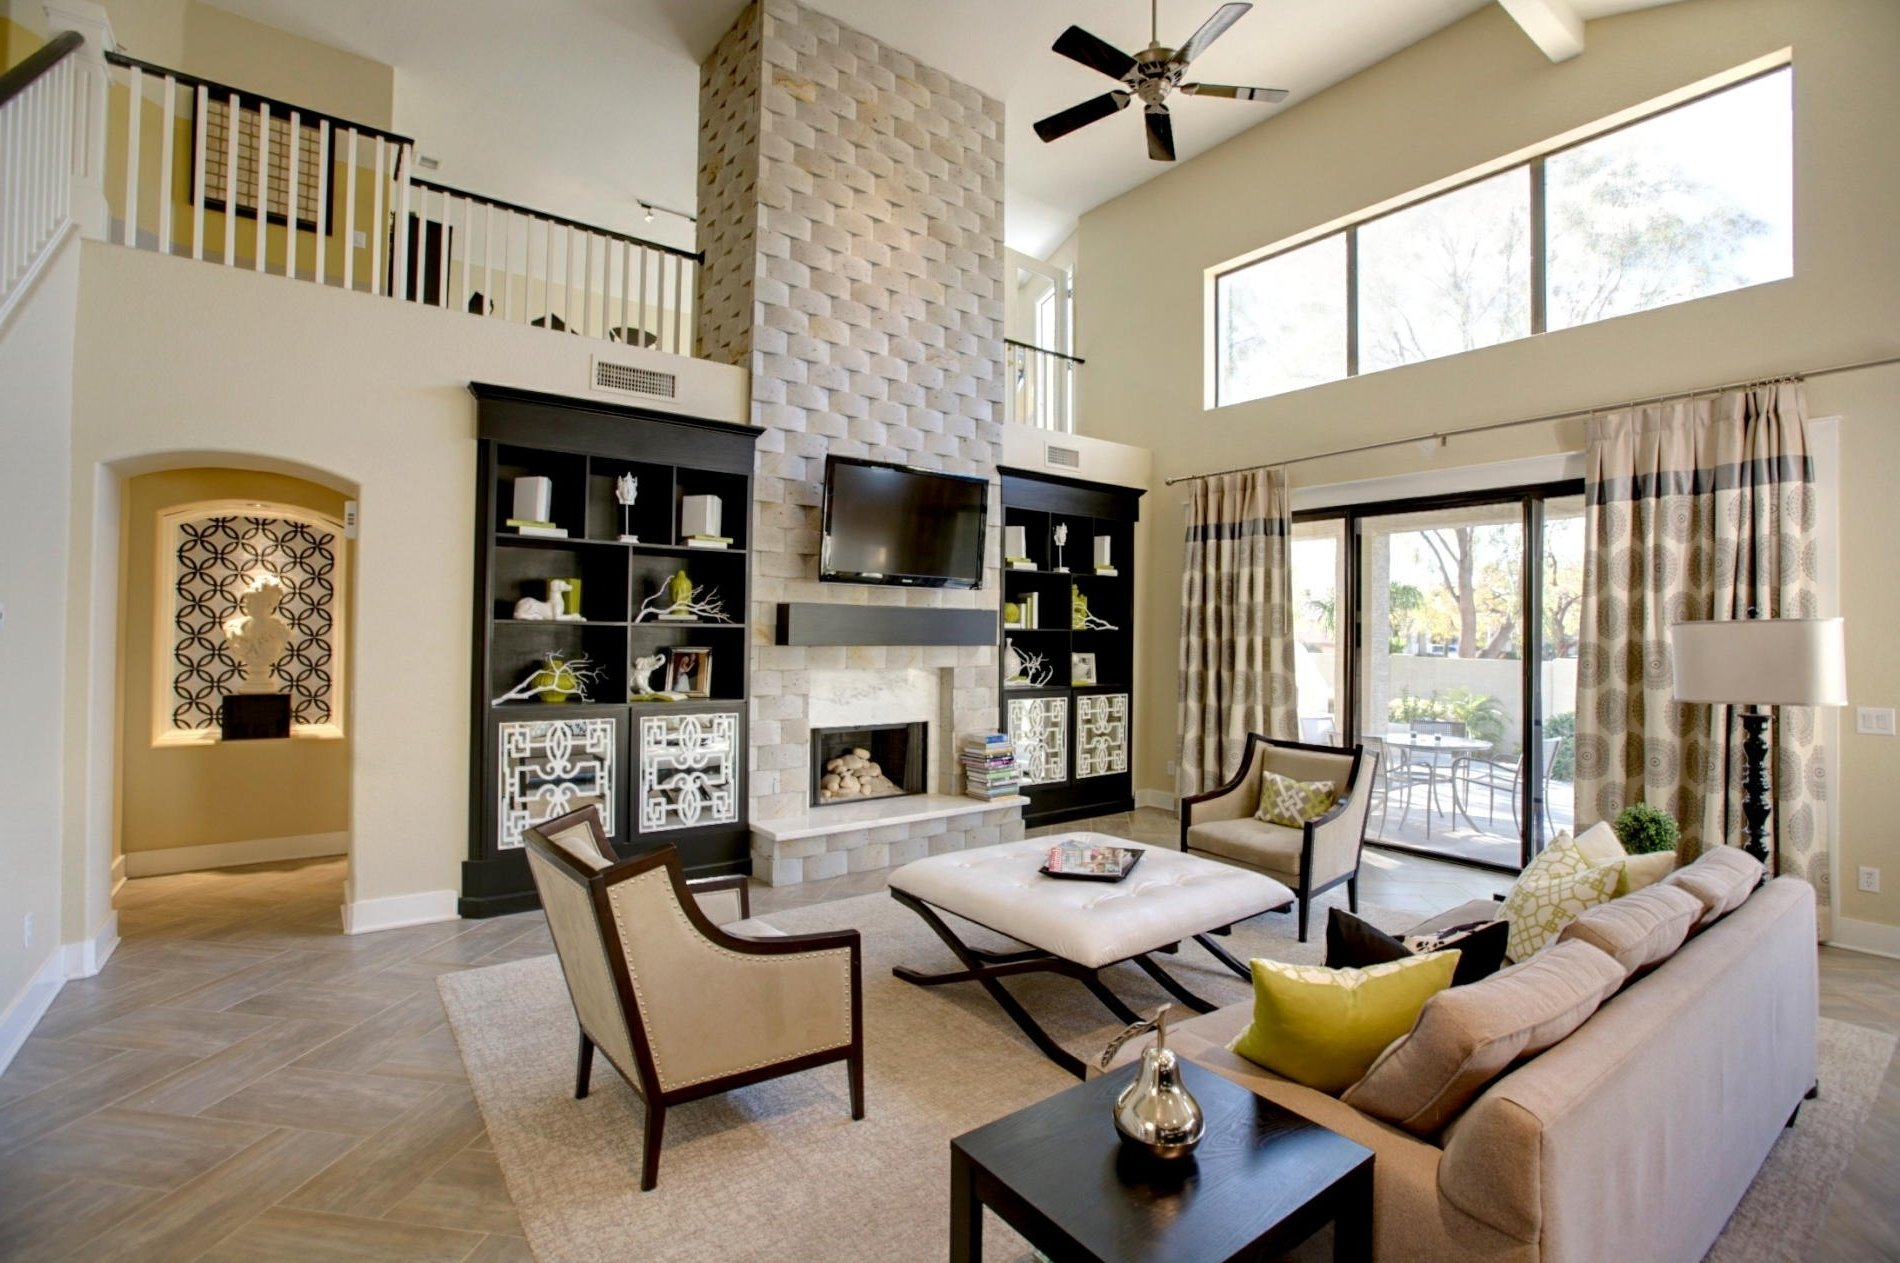 10 Lovable Decorating Ideas For Family Room fireplace gorgeous small family room ideas with living emejing in 2021